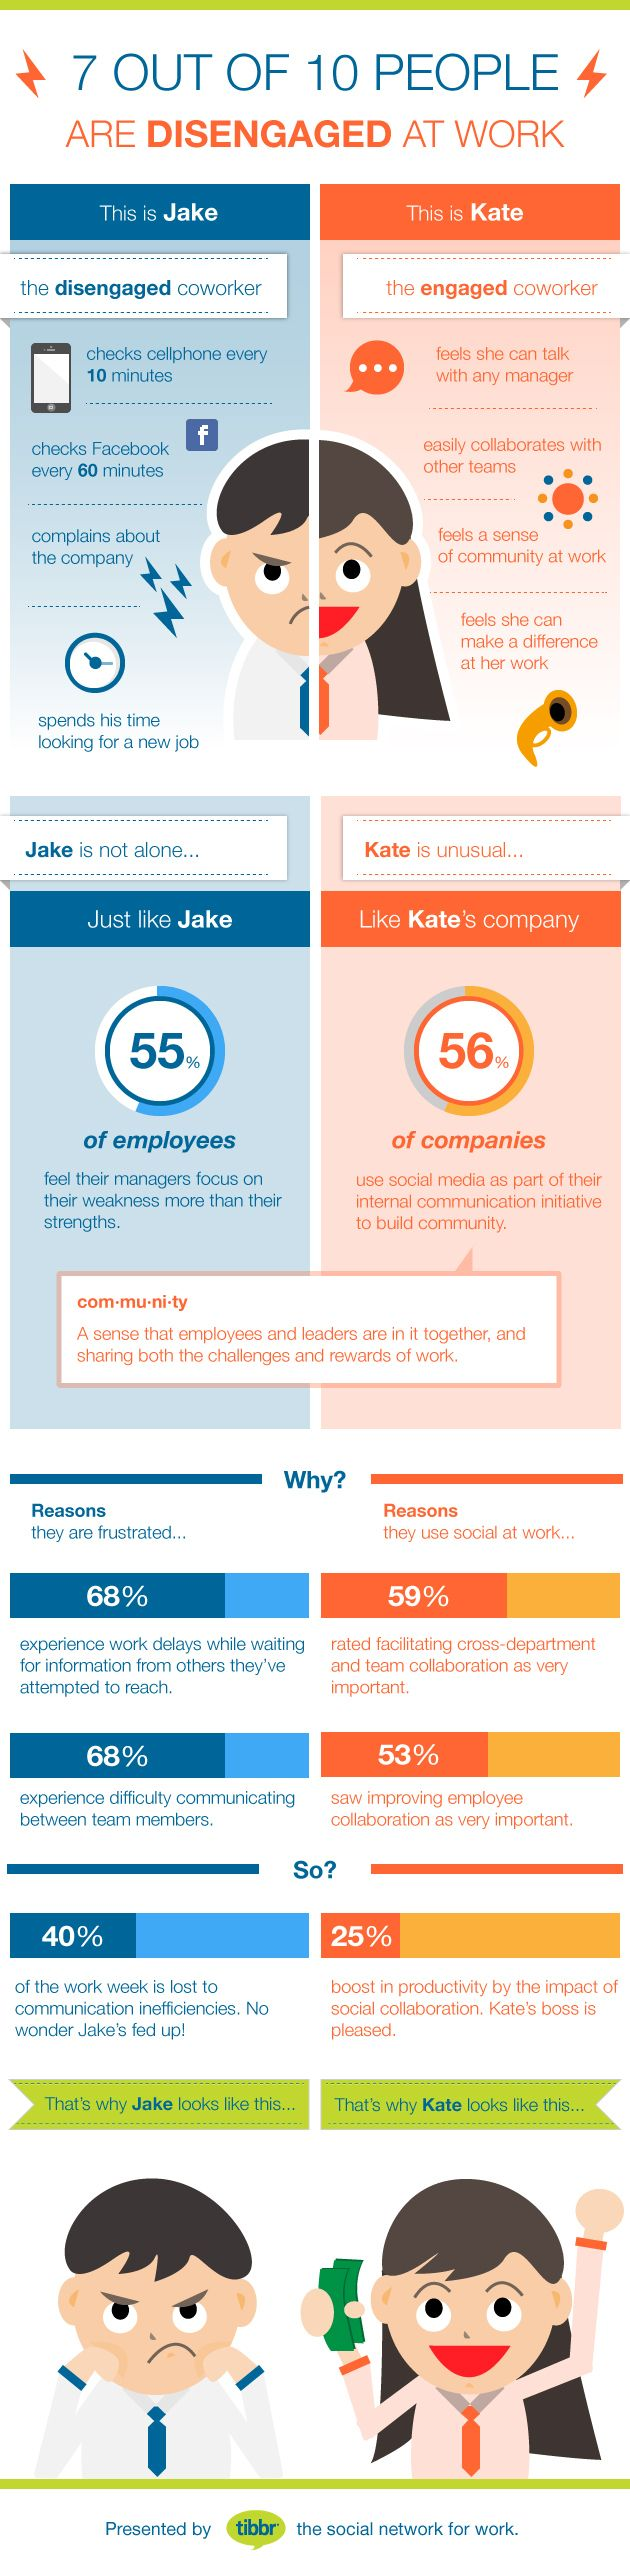 7 out of 10 people are disengaged at work #infografia #infographic